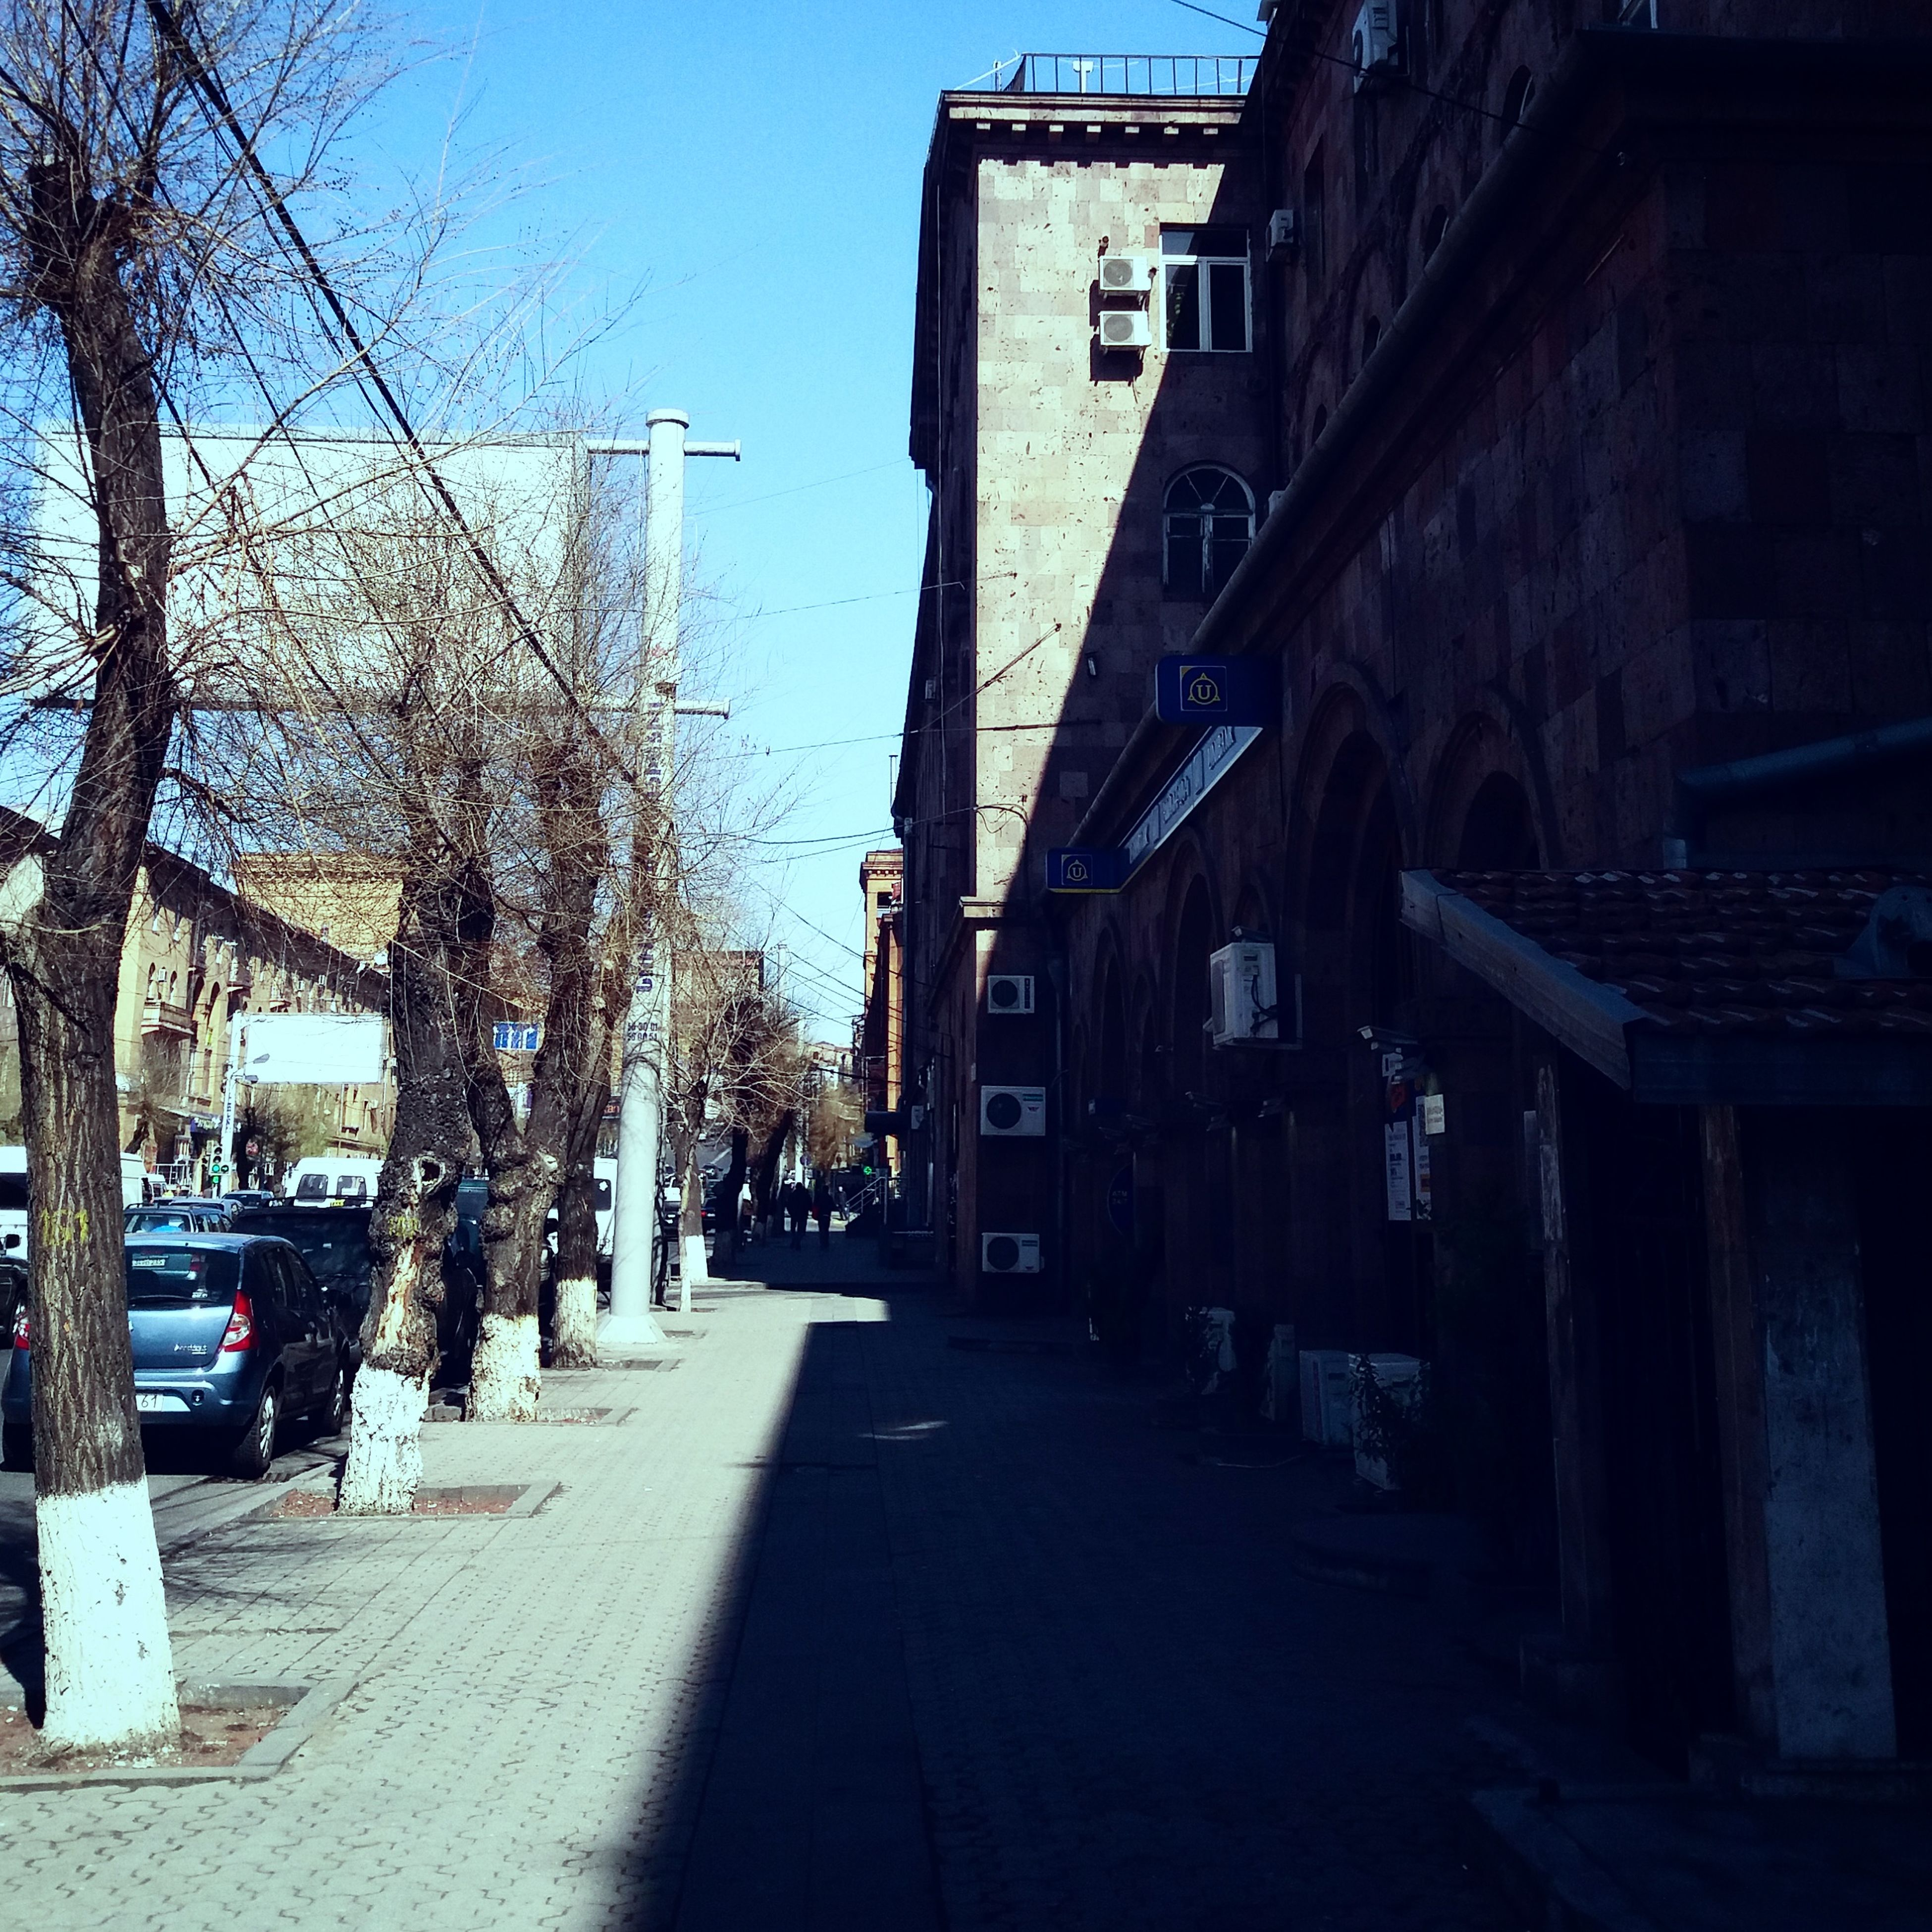 building exterior, the way forward, architecture, built structure, diminishing perspective, street, city, clear sky, vanishing point, tree, sunlight, narrow, long, residential structure, shadow, residential building, empty, cobblestone, walkway, road